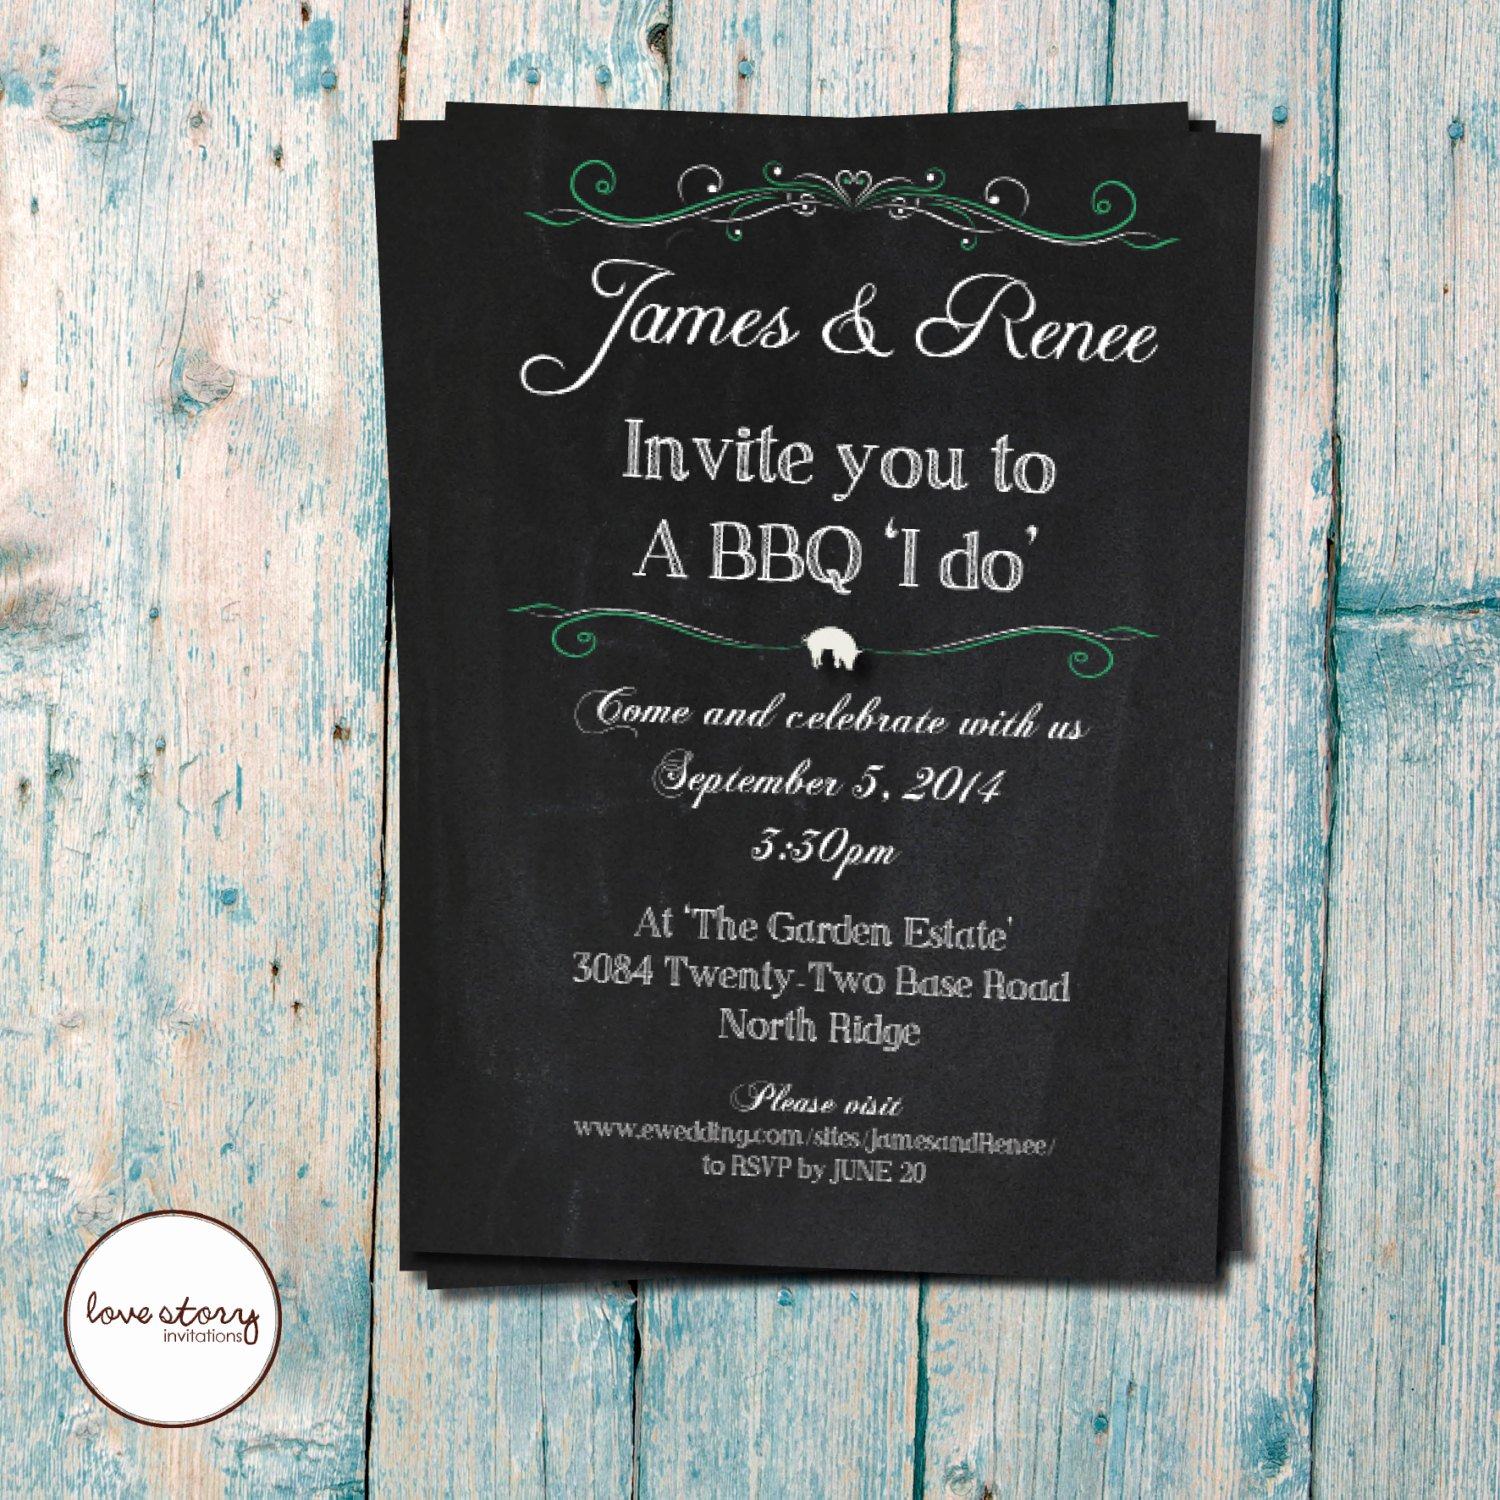 I Do Barbecue Invitations Beautiful Bbq I Do Wedding Invitation Casual by Lovestoryinvitations